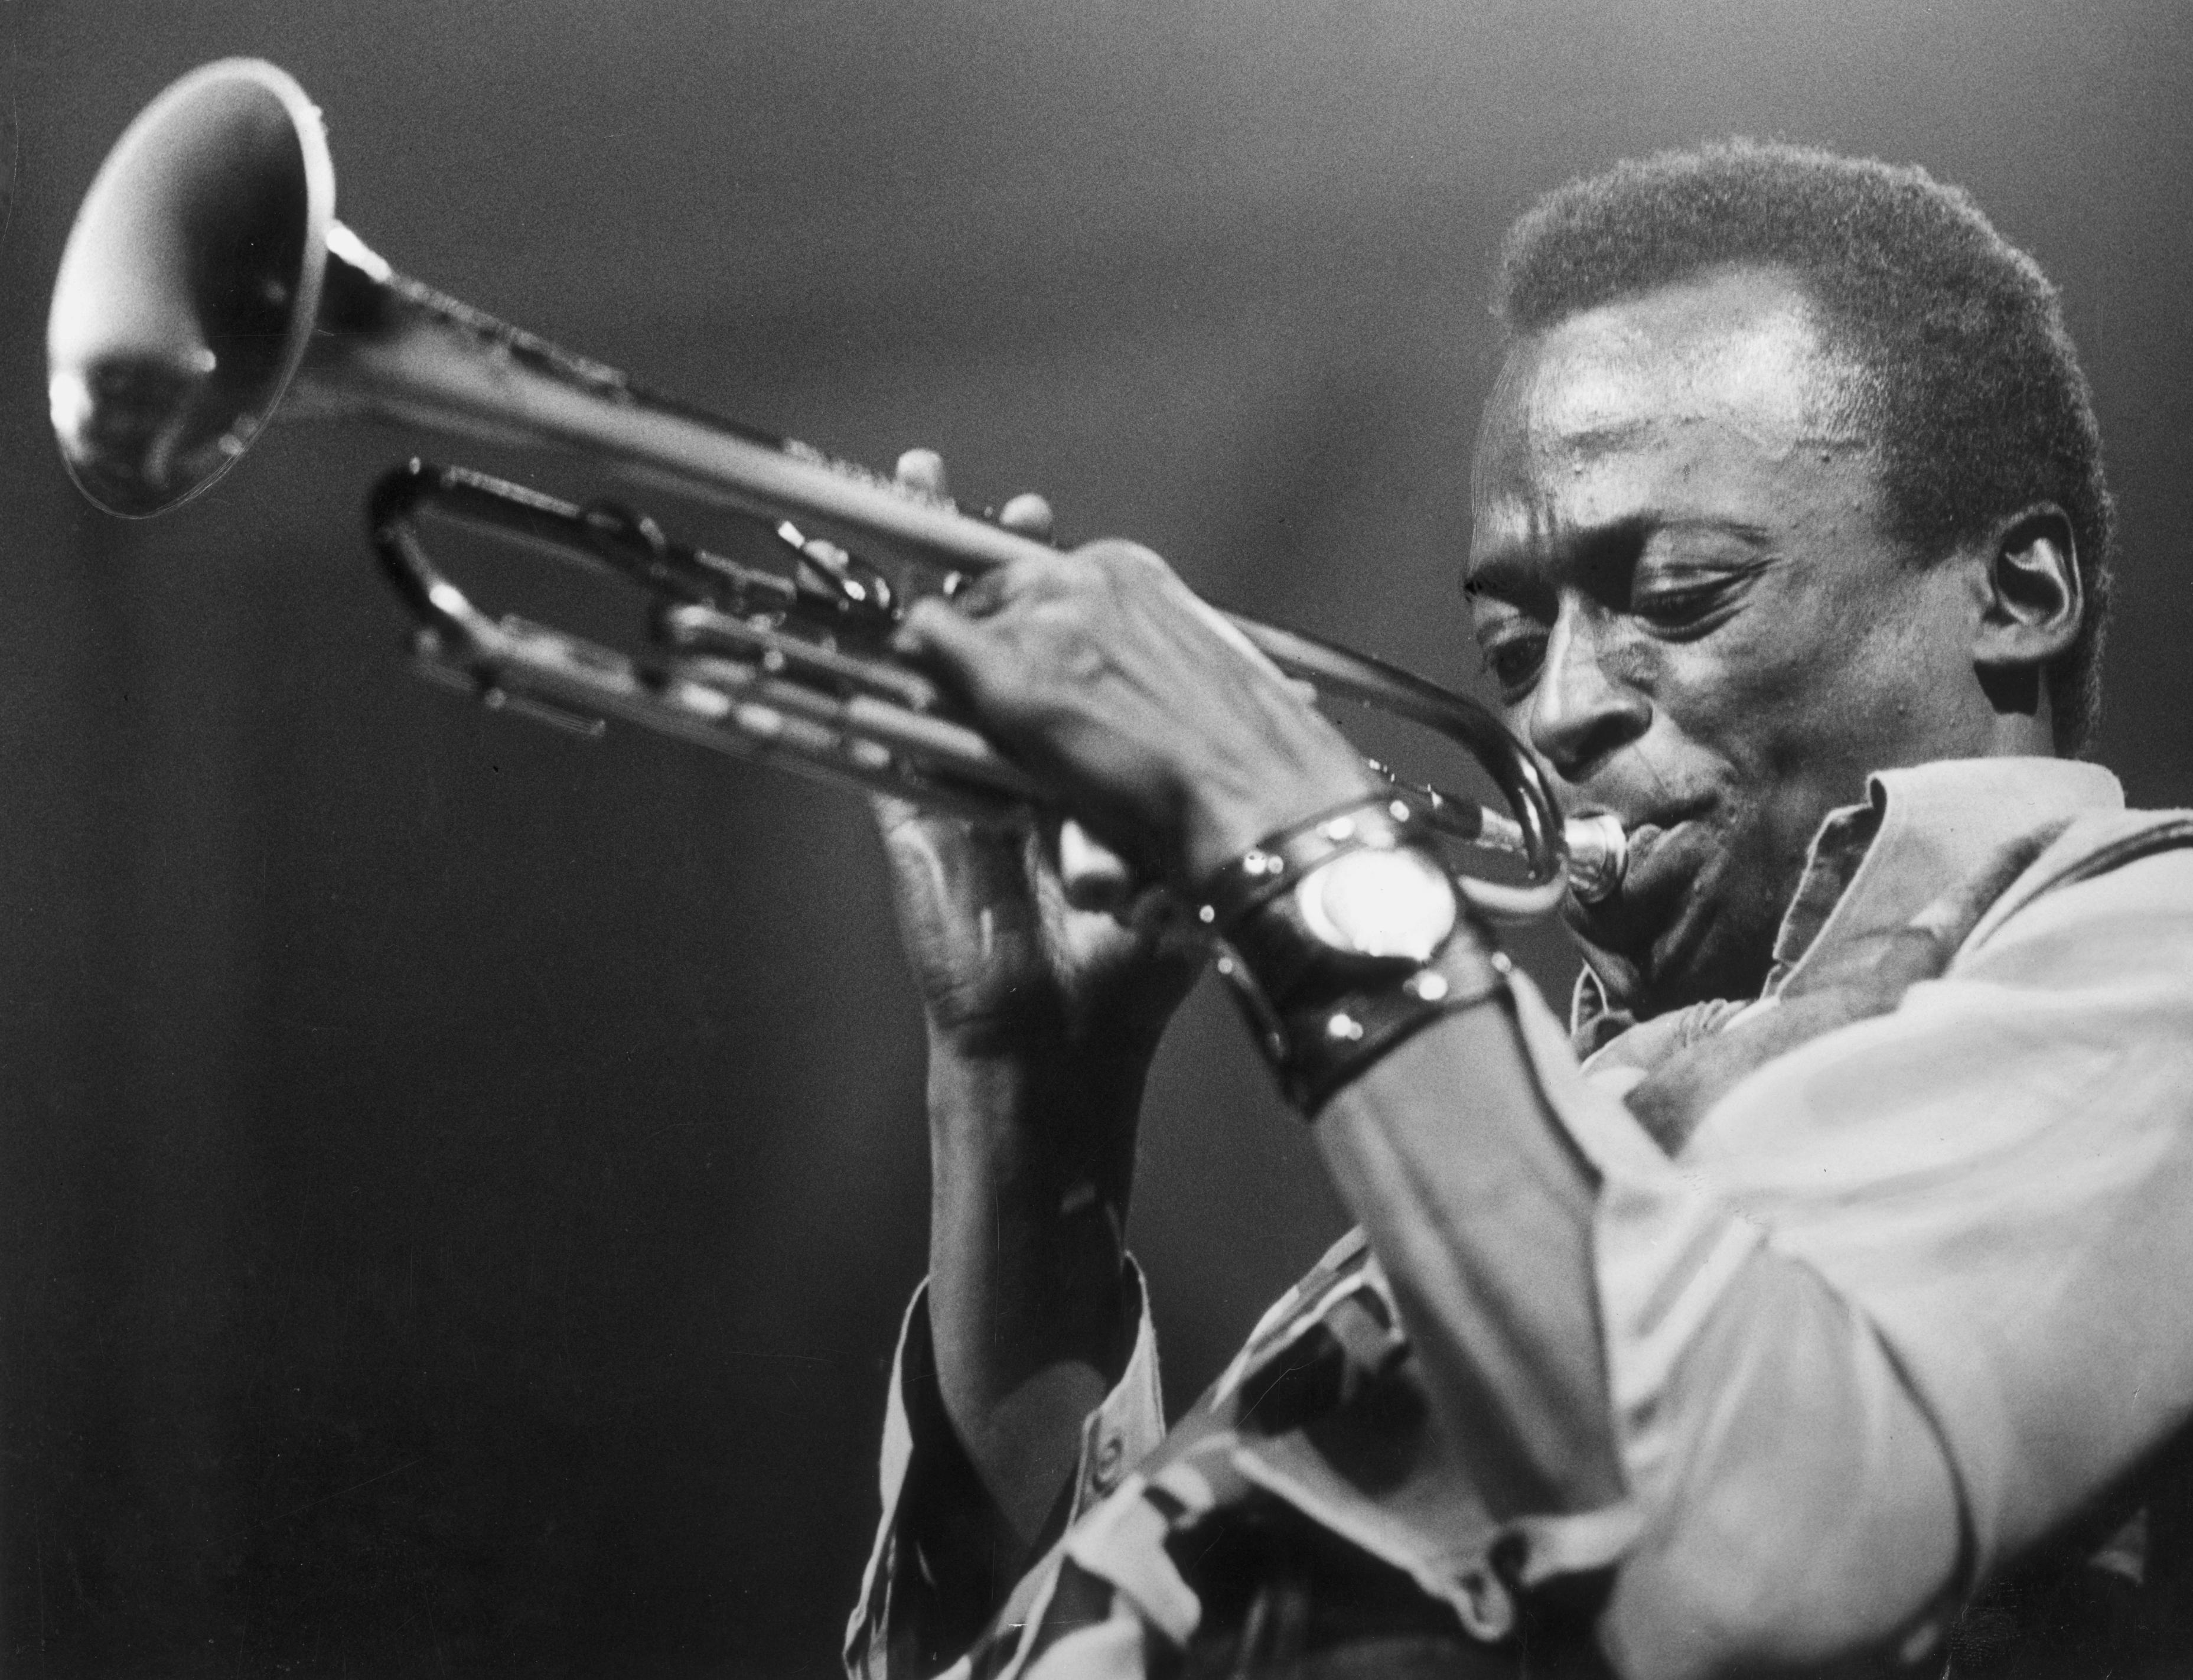 an introduction to different styles and eras of jazz music